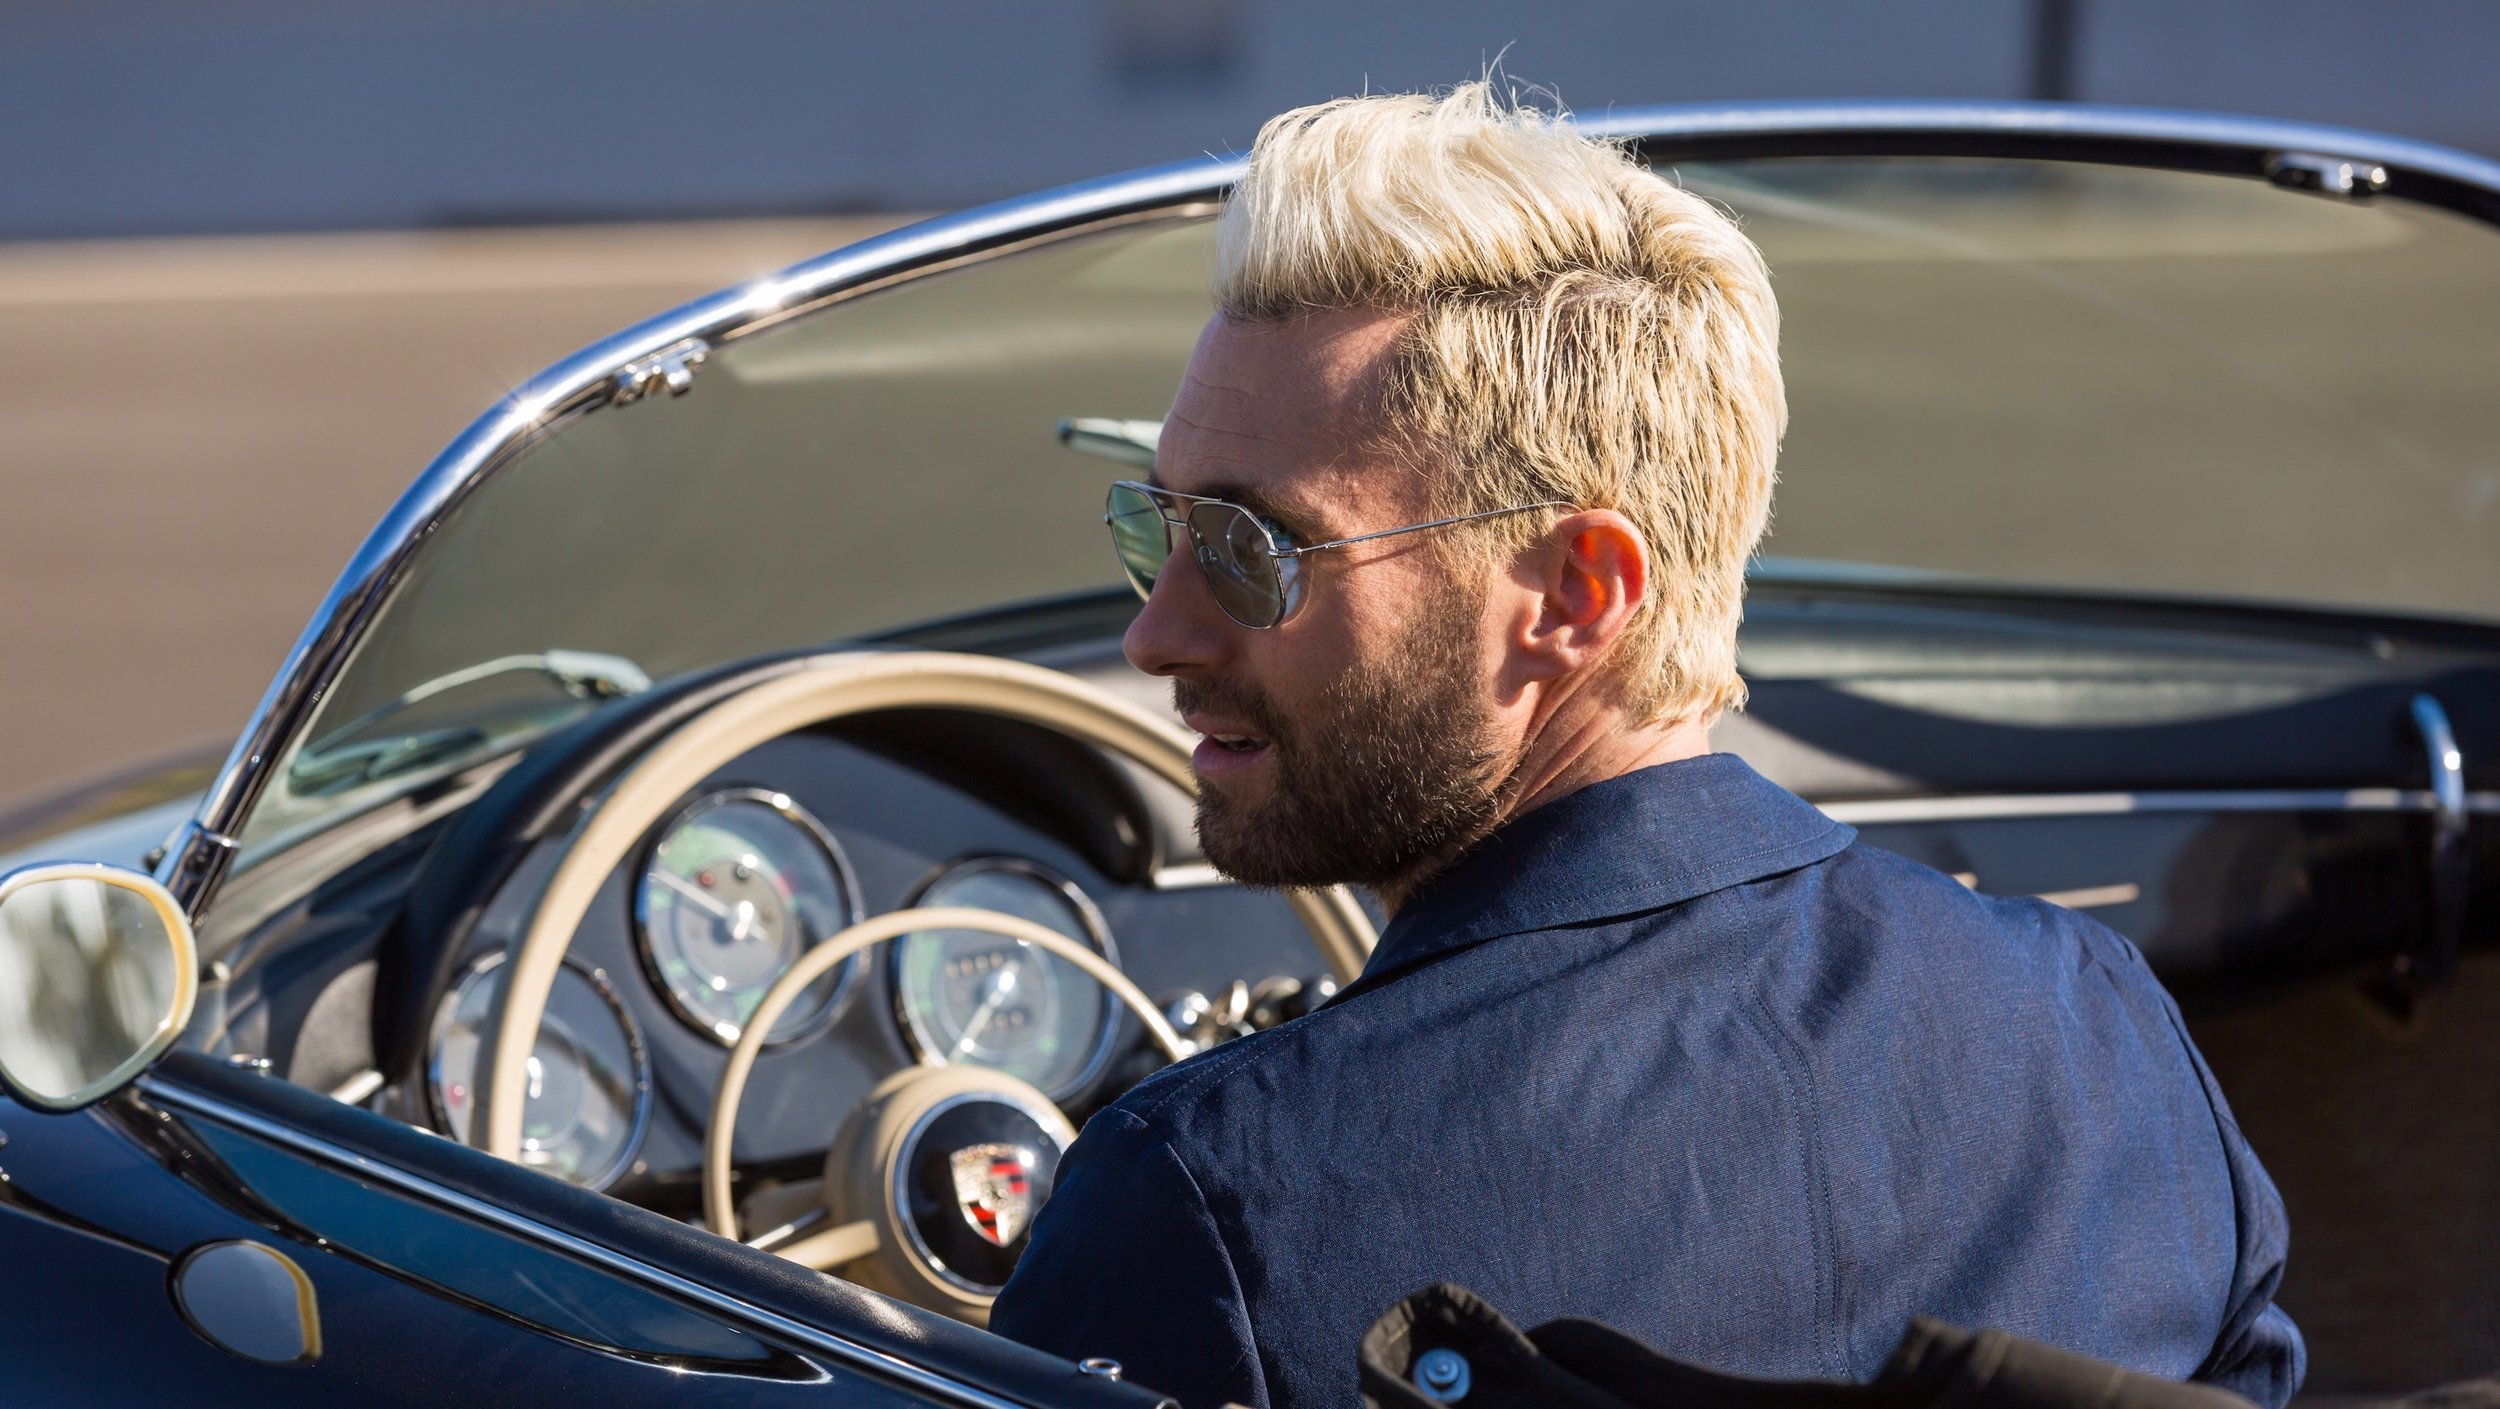 high_adam_levine_porsche_experience_center_los_angeles_2018_porsche_ag.jpg